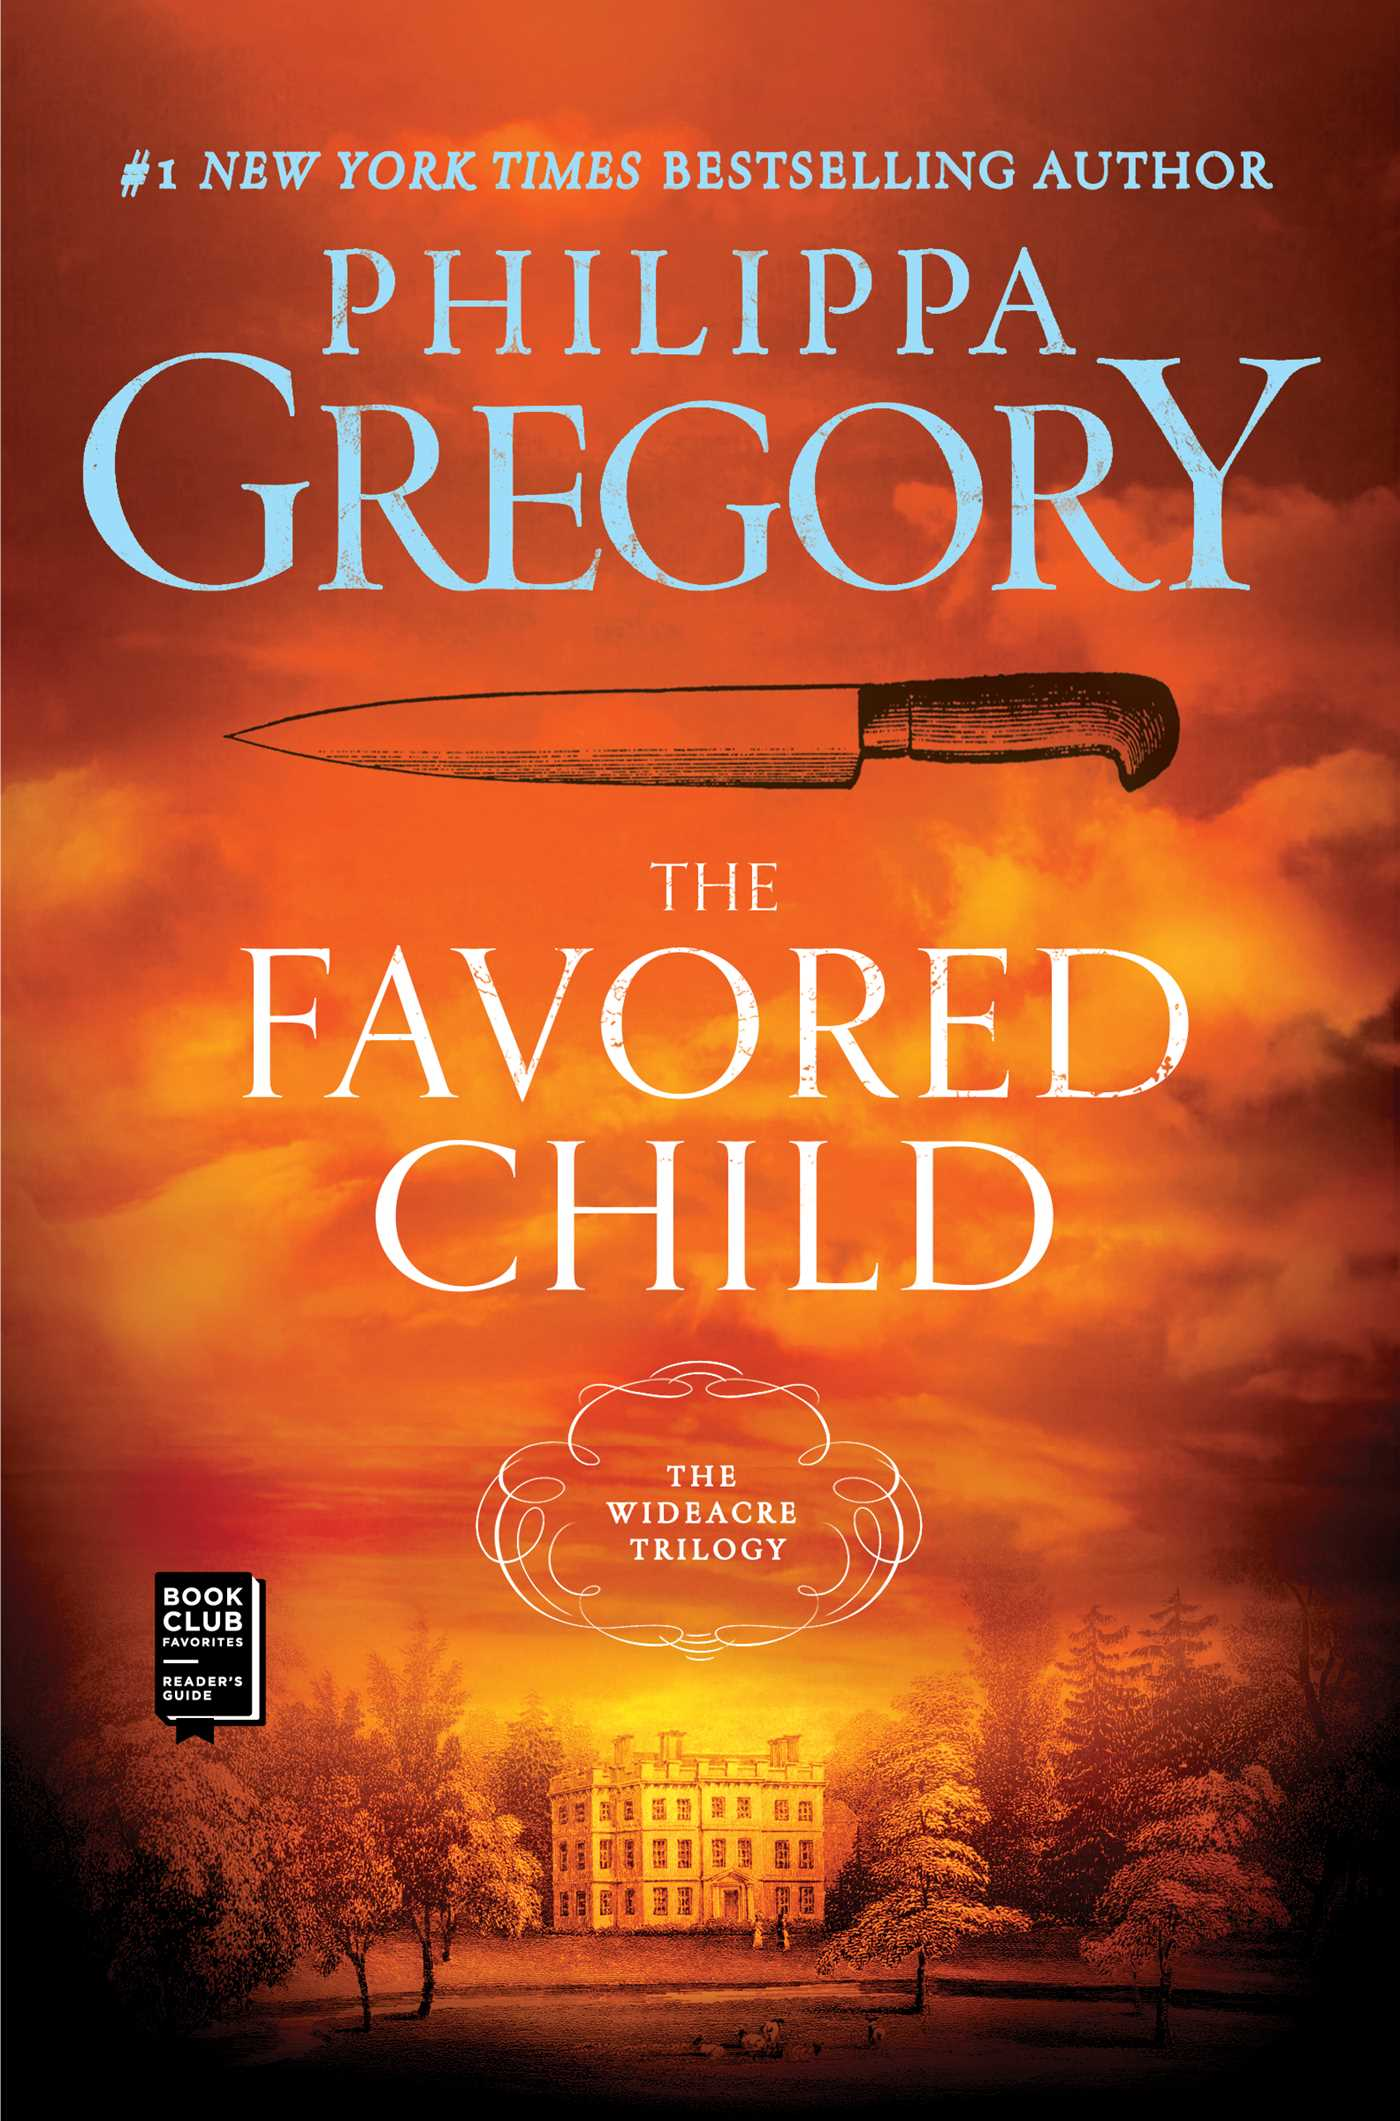 Amber Nevada Wiki the favored child | bookphilippa gregory | official